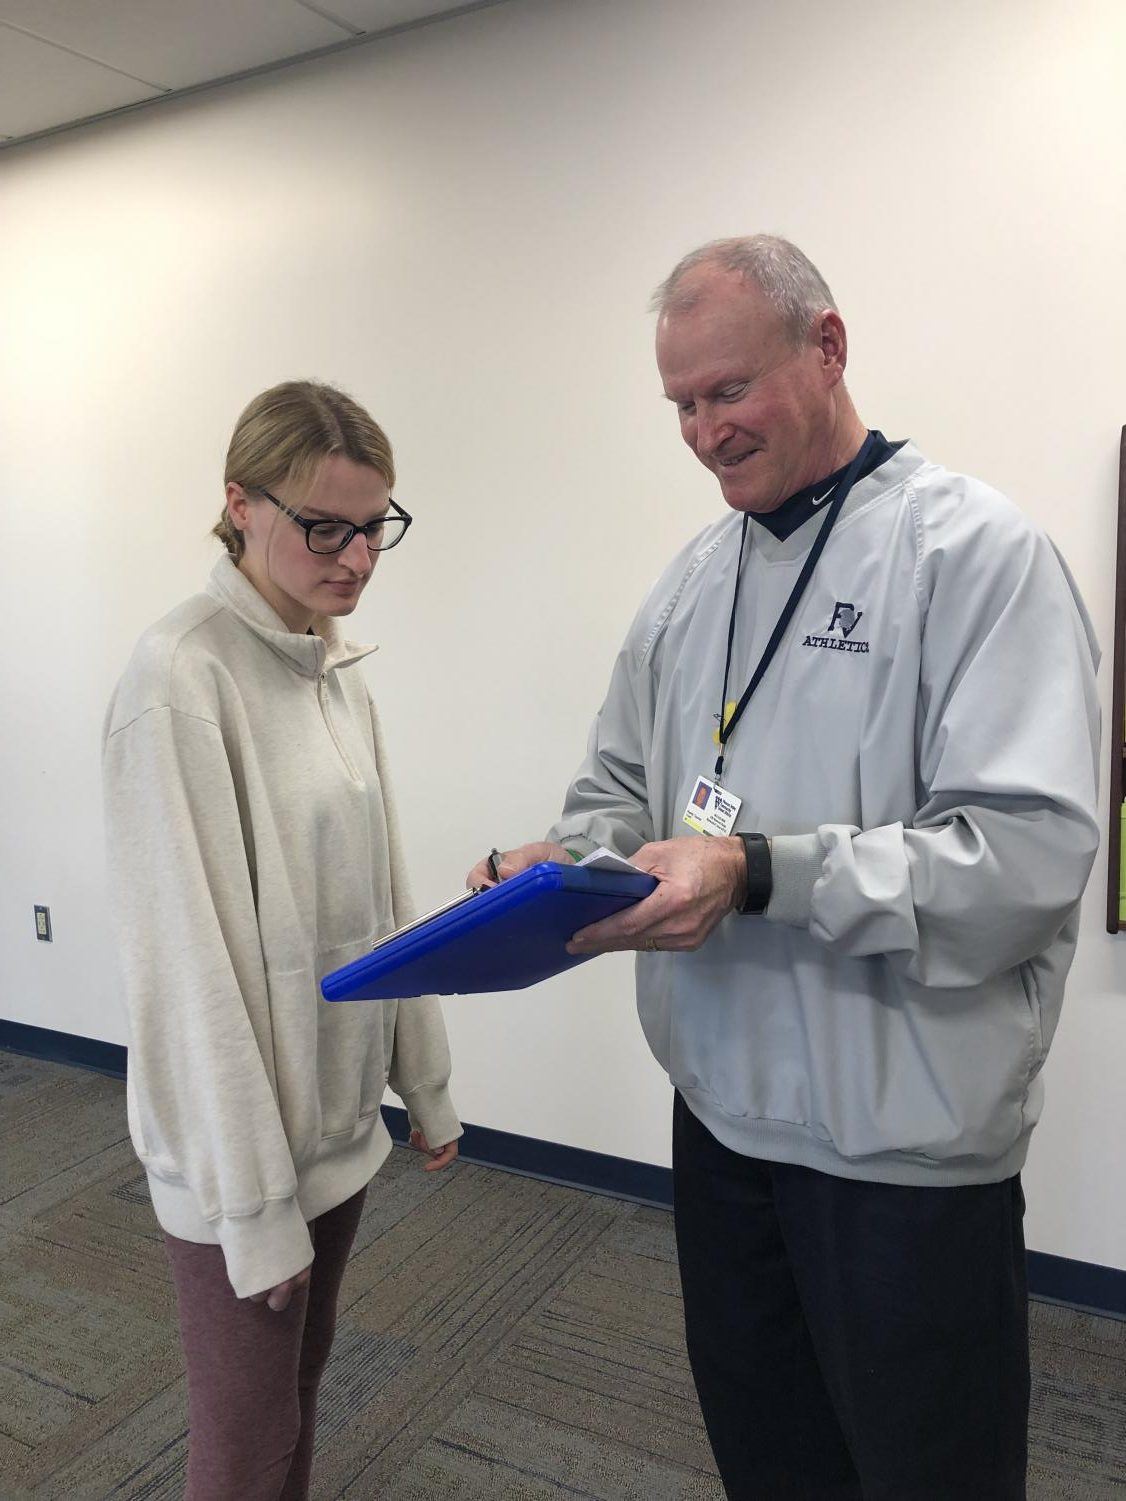 Senior Natalie Cremer looks glum after receiving a detention from Pleasant Valley High School's Dean of Students, Randy Teemer, during her fourth period study hall.